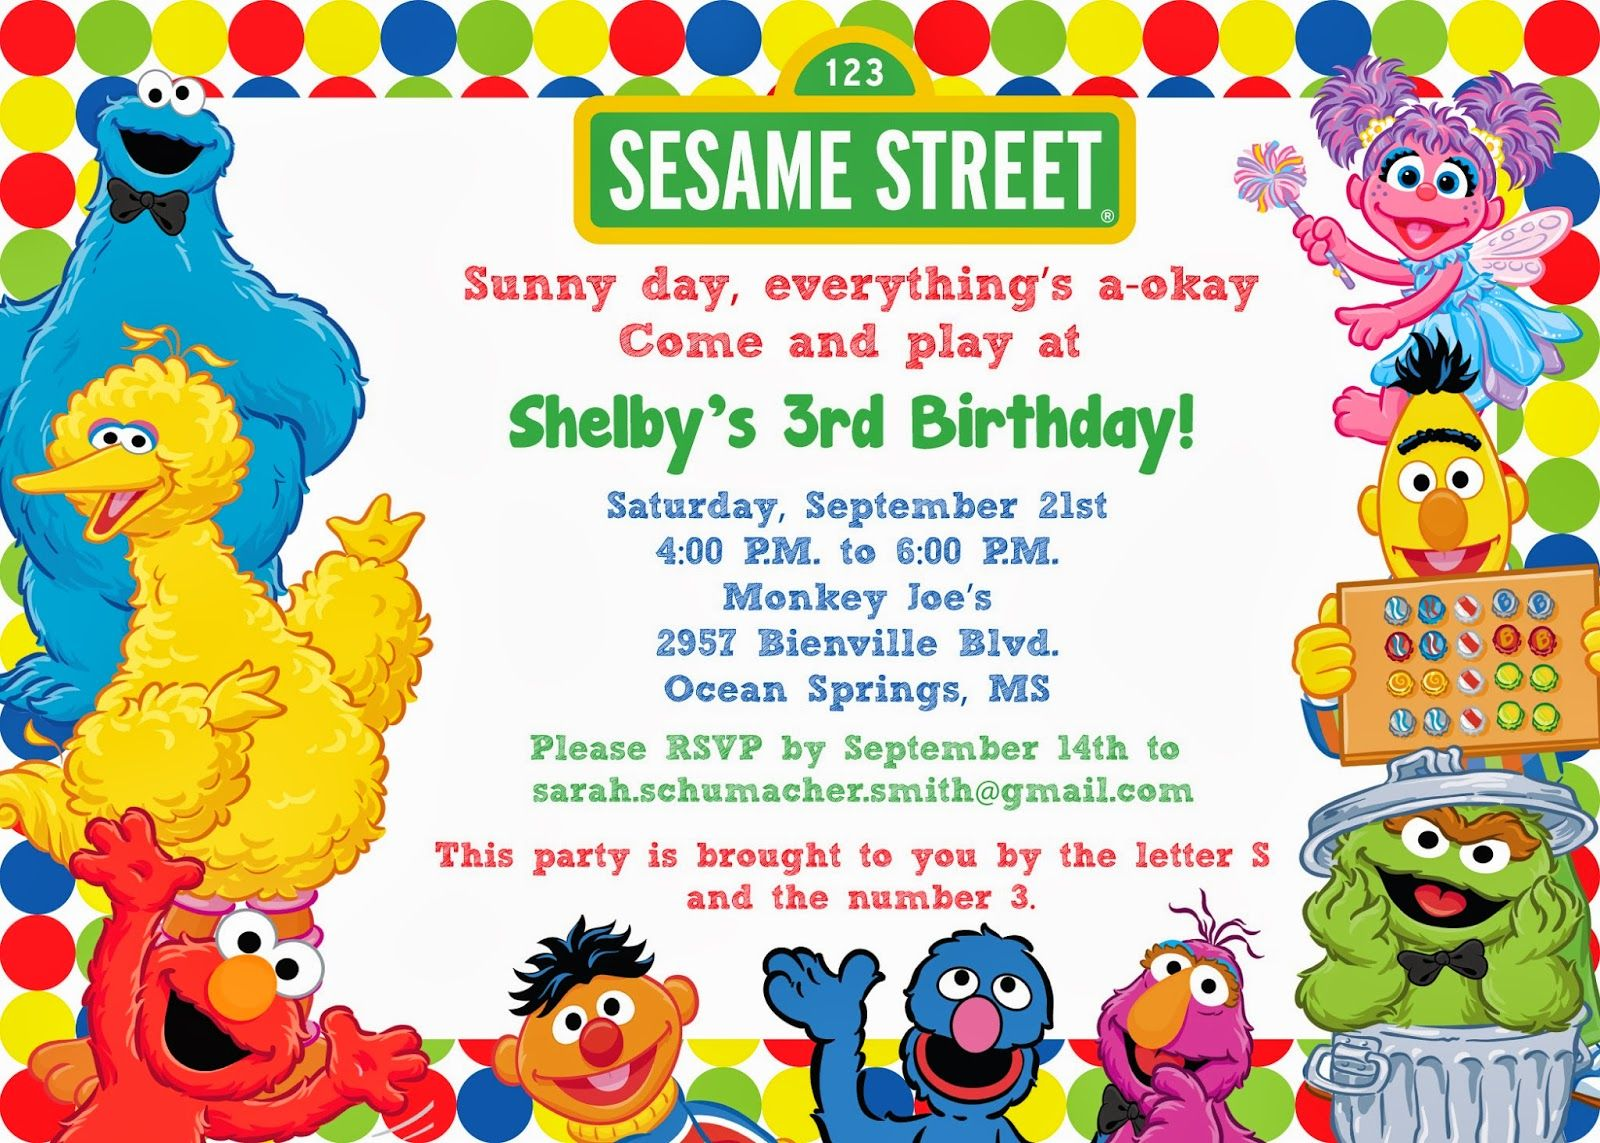 Elmo 1st birthday party ideas birthday party sesamestreet - Sesame Street Invitations Sesame Street Birthday Invitation Templates